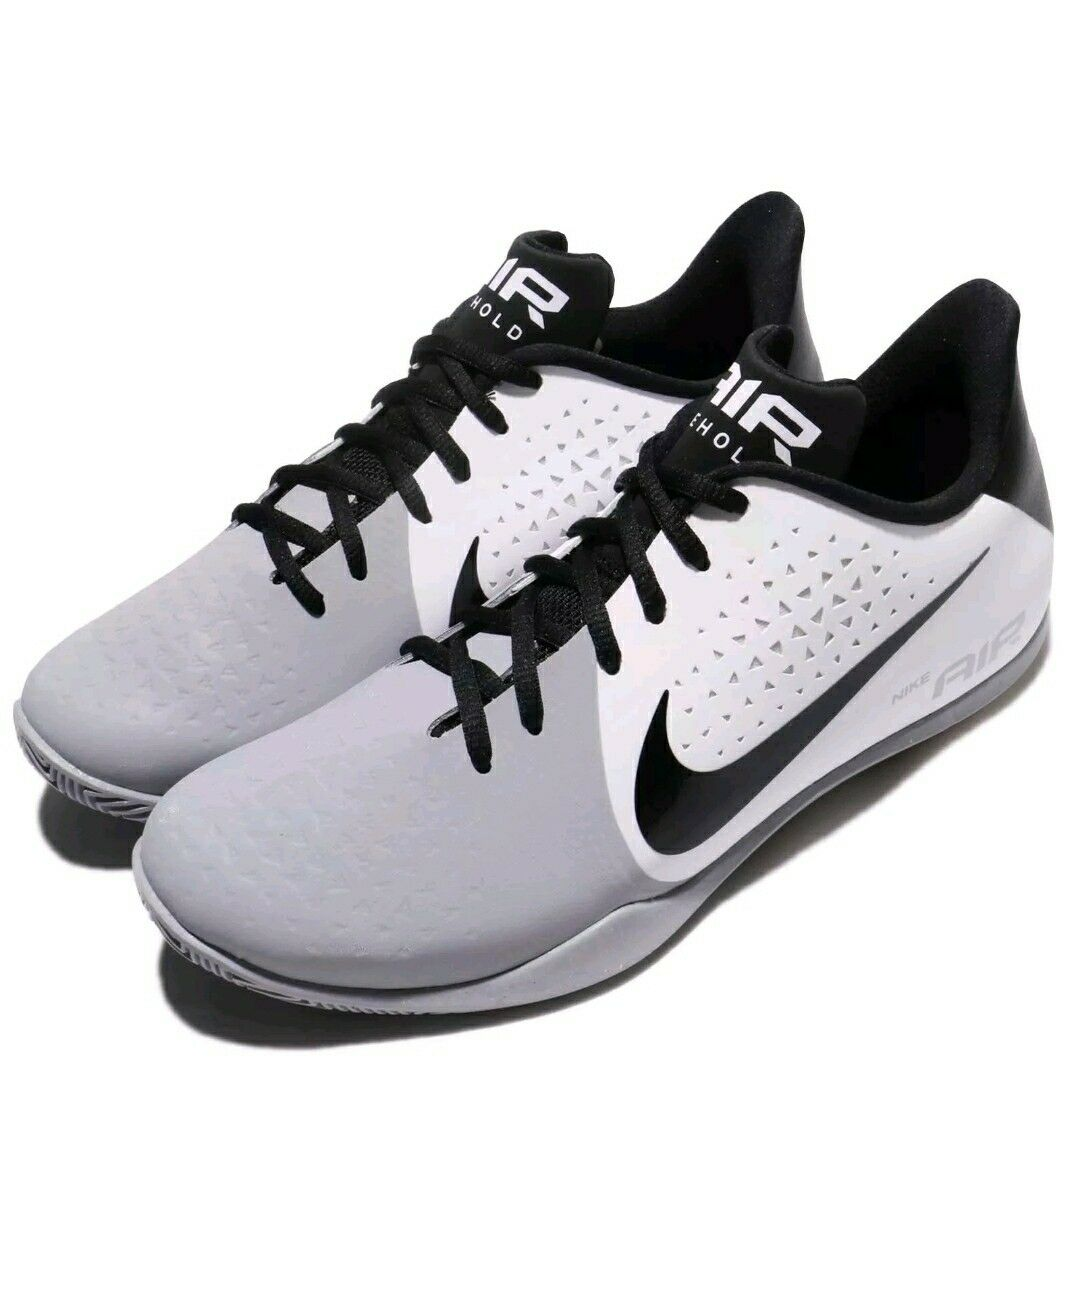 NIKE AIR BEHOLD LOW WHITE/BLACK-WOLF GREY BASKETBALL SHOES ( 898450 101 )SZ 14